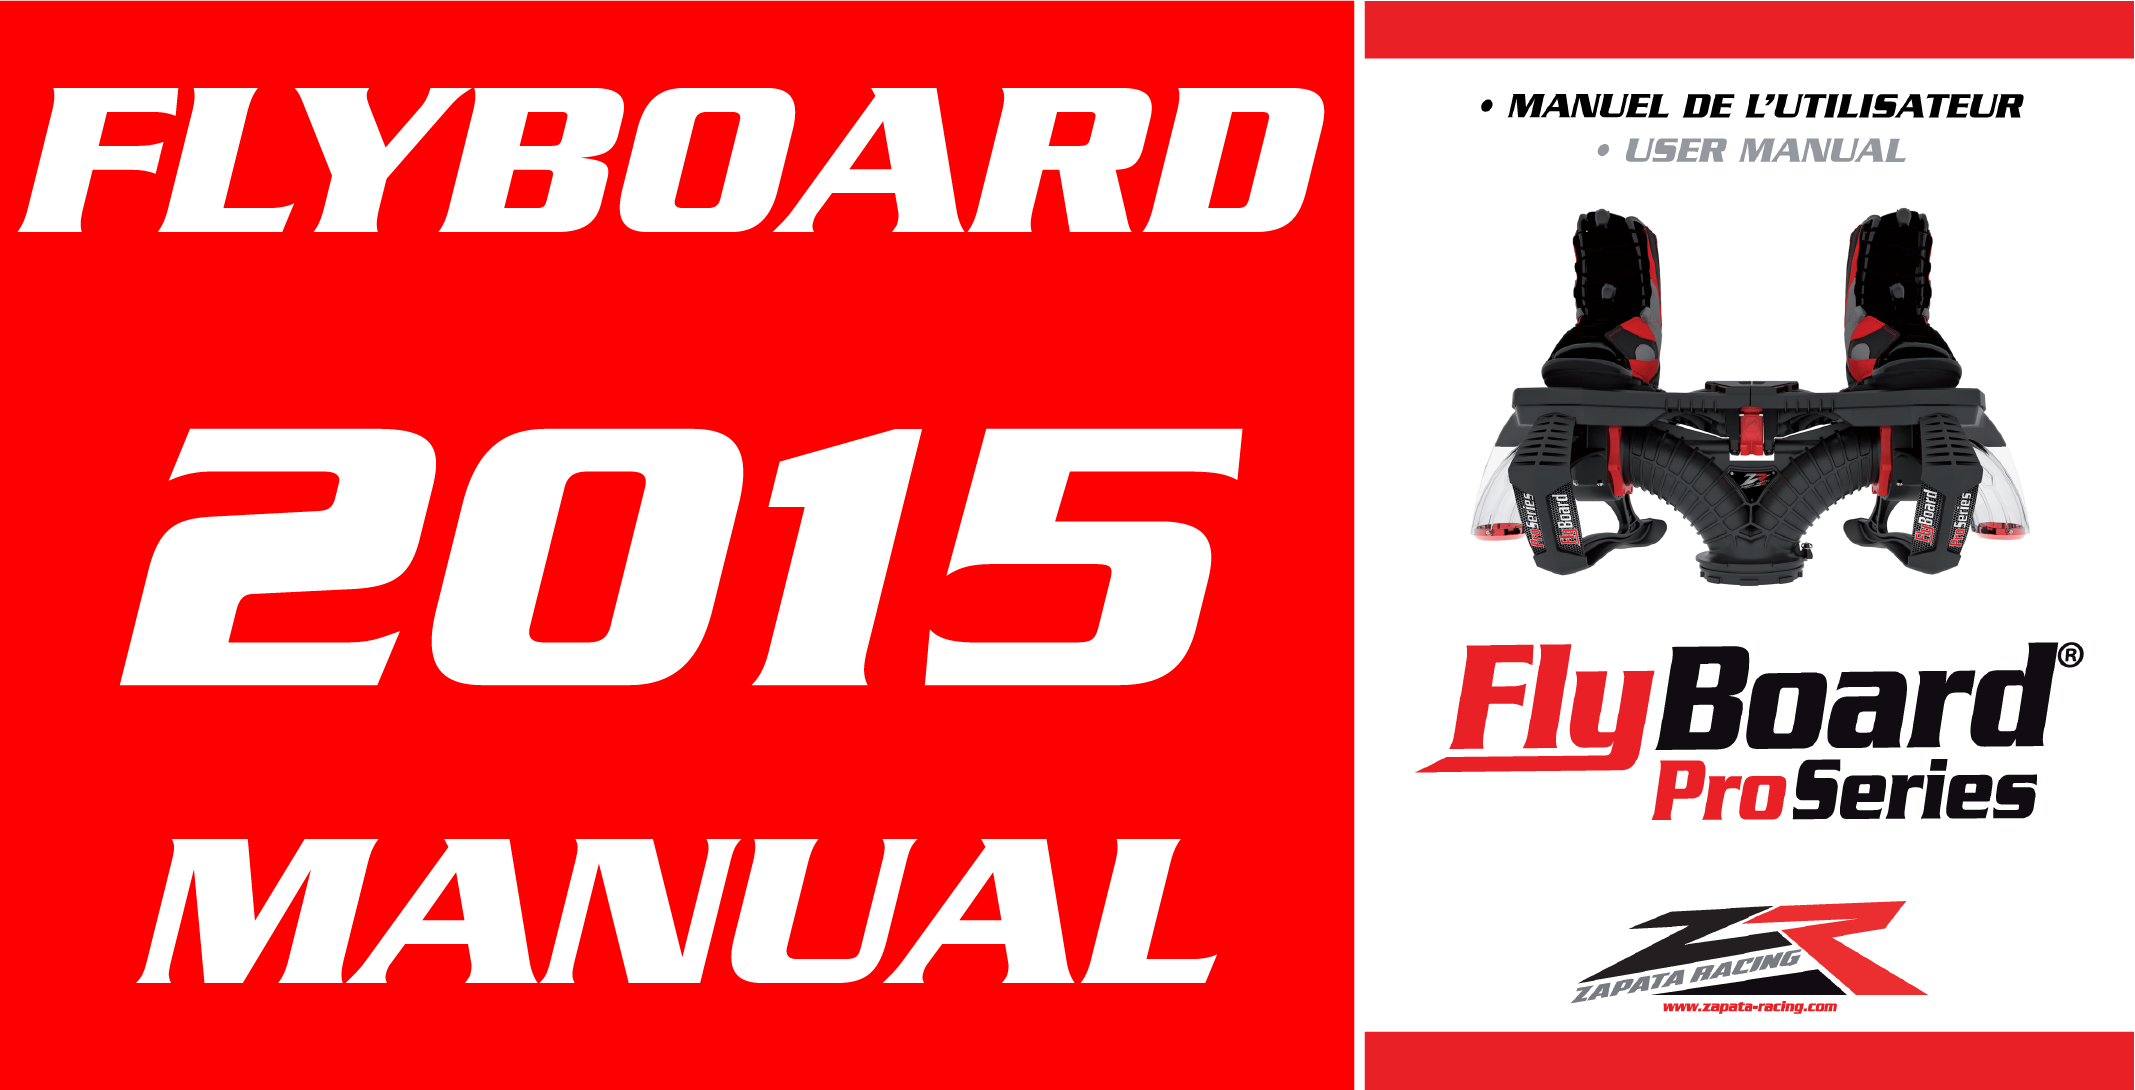 Flyboard V4 2015 Manual Download